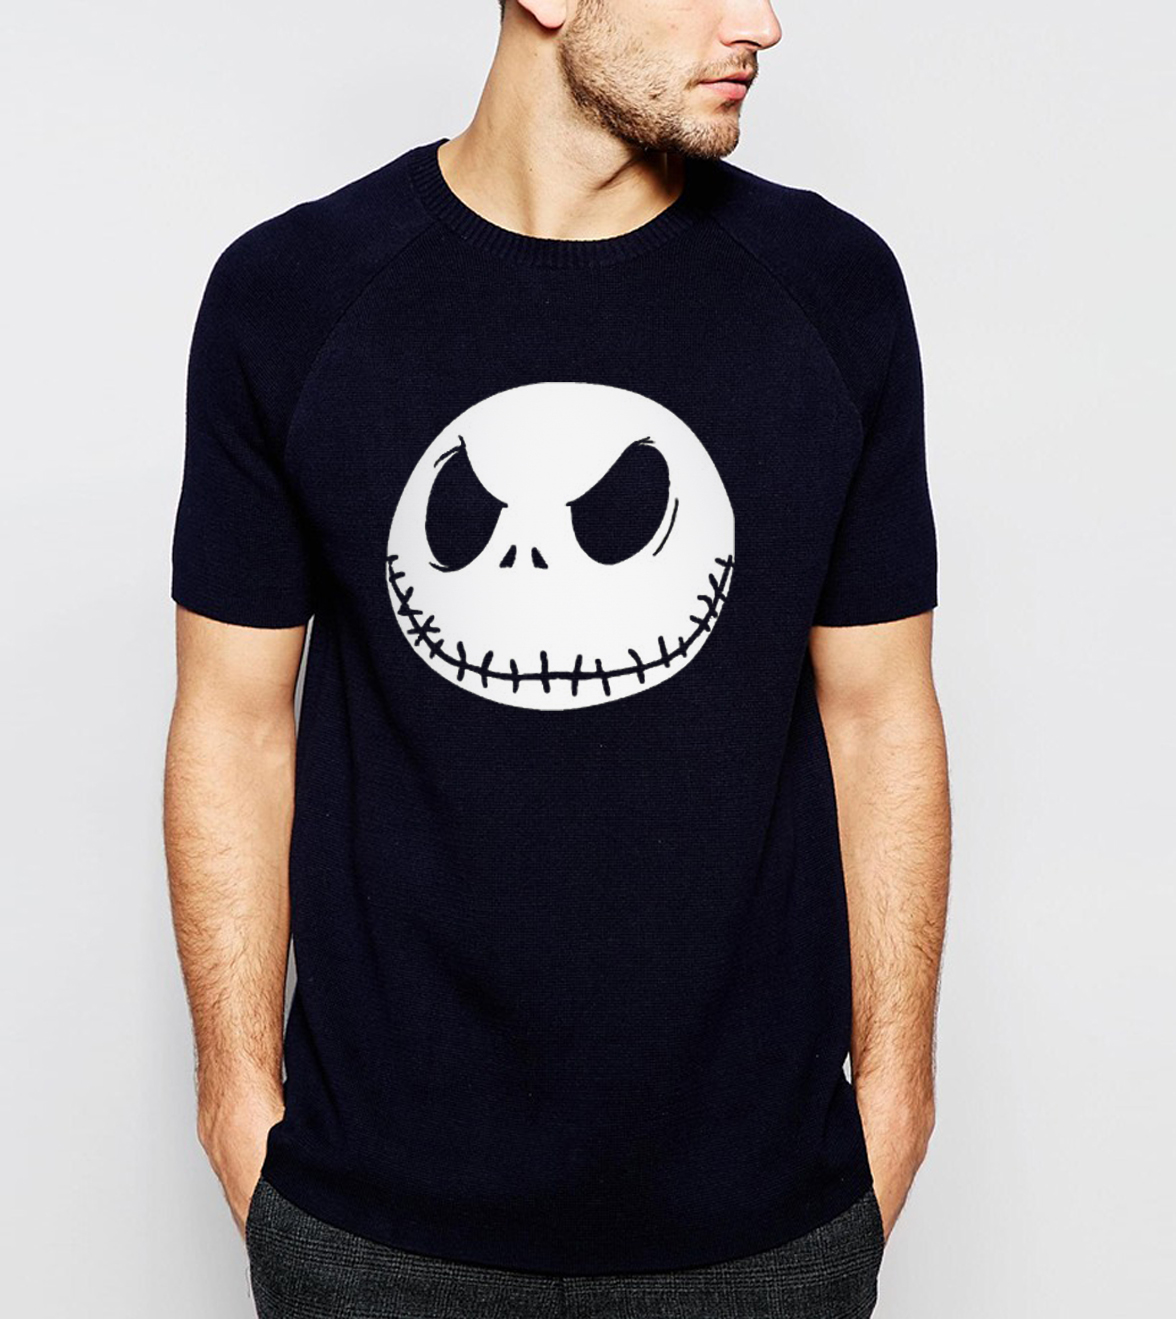 ALI shop ...  ... 32791189173 ... 1 ... nightmare before christmas cartoon Jack Skellington Men T Shirt Grimace 2019 Summer New 100% Cotton Hip Hop Streetwear T-Shirt ...